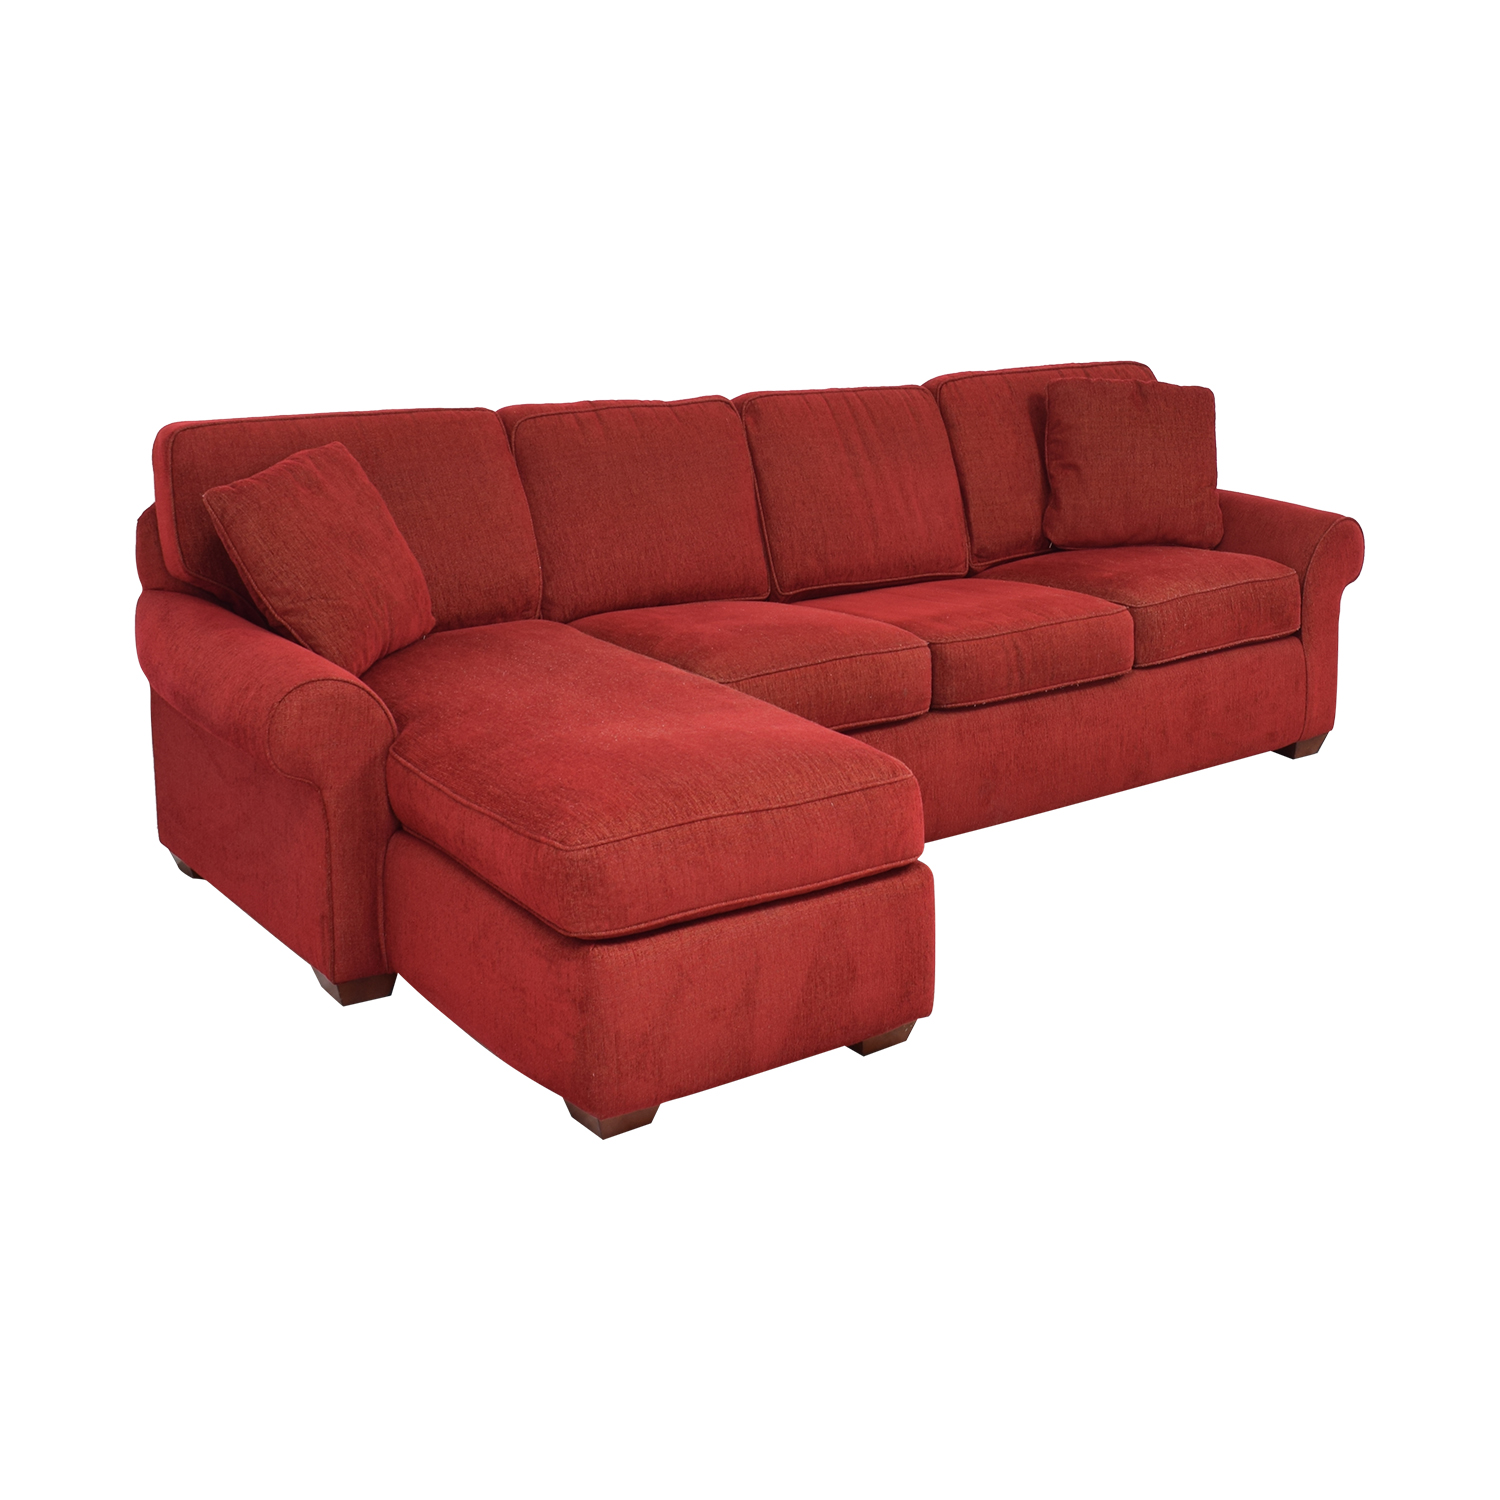 79 off chaise sectional sofa sofas